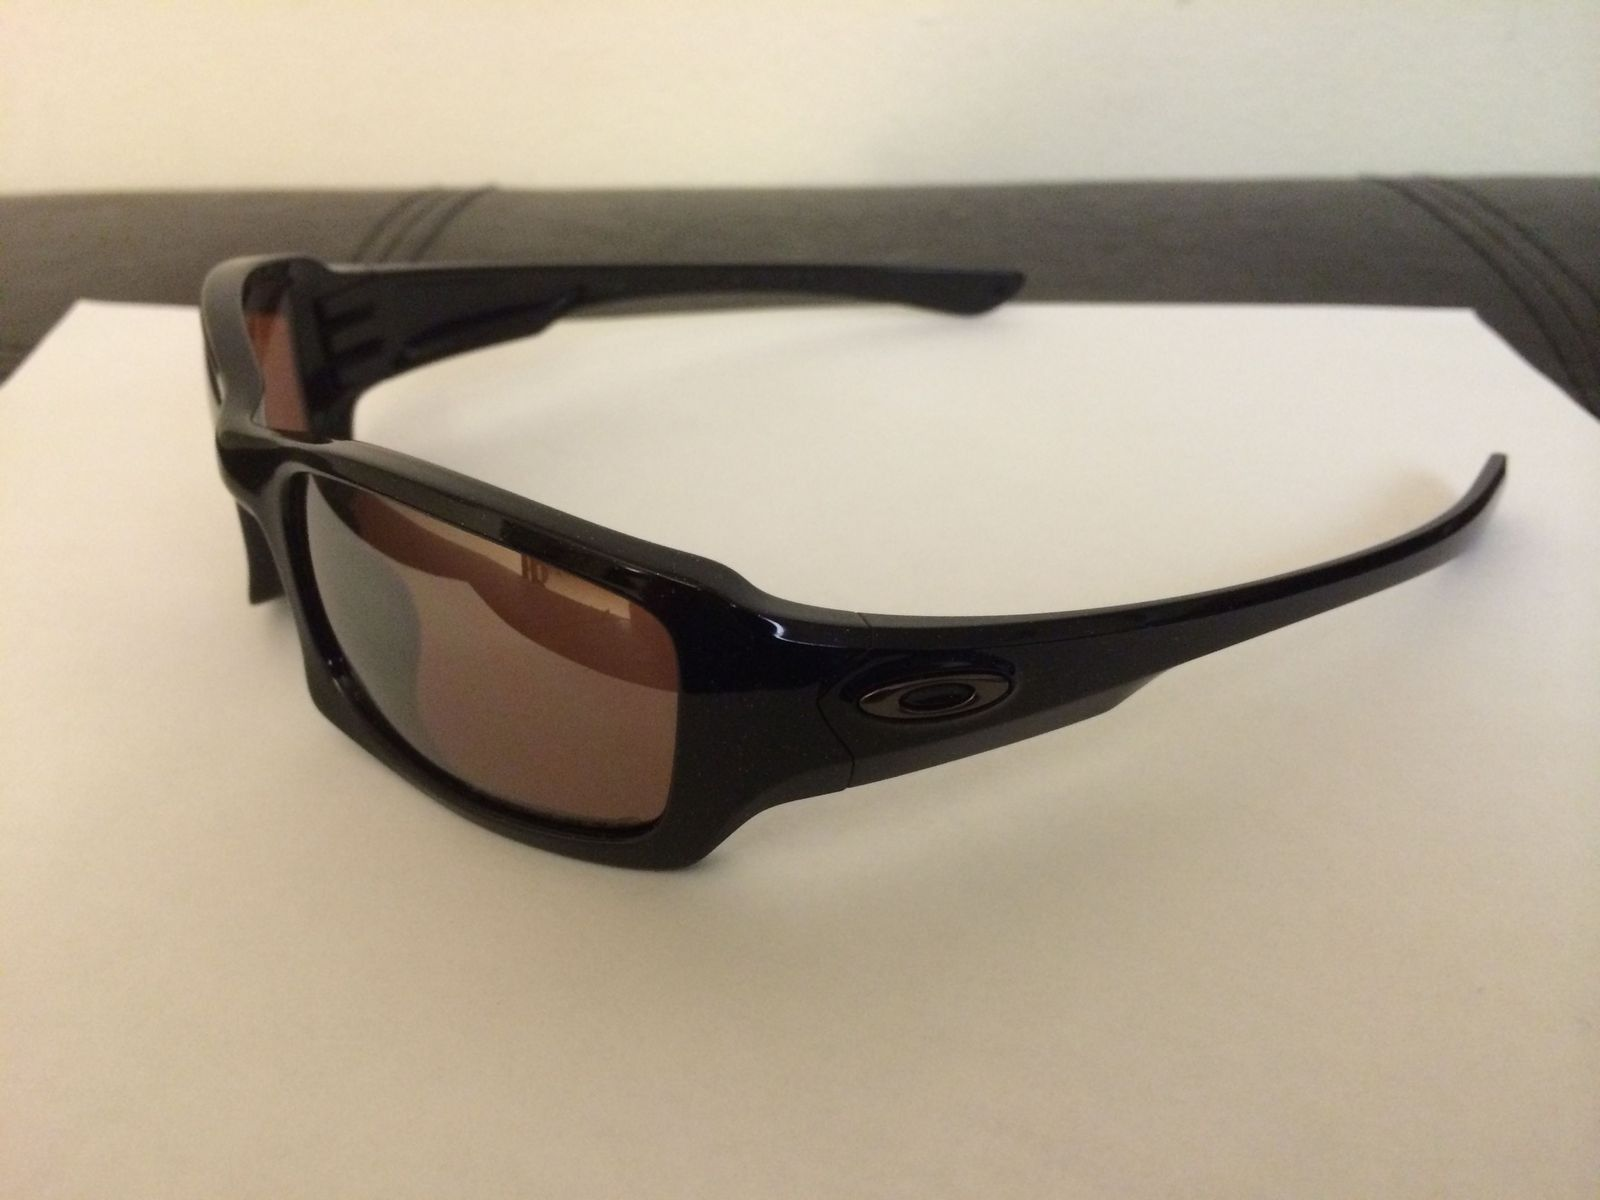 Asian Fit - Metallic Fives 3.0 W/ Polarized Vr28 Black Iridium - XUrkClH.jpg